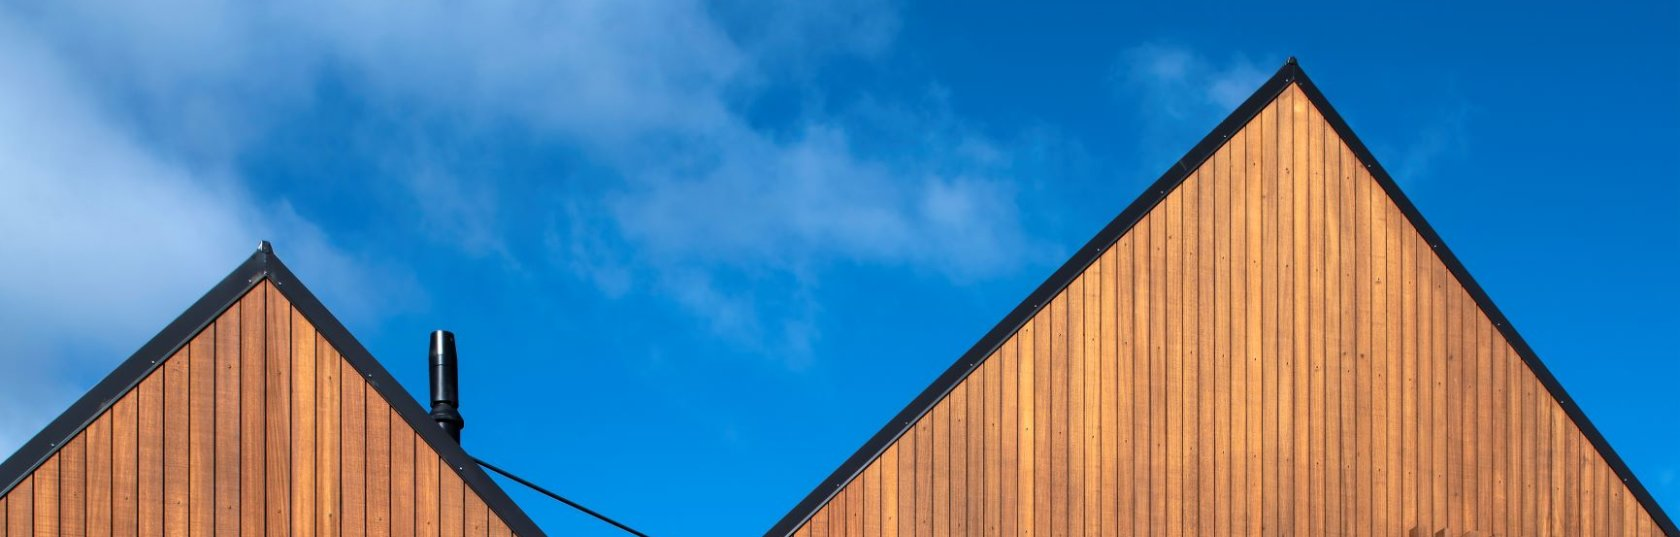 The thermally modified wood revolutionising timber cladding